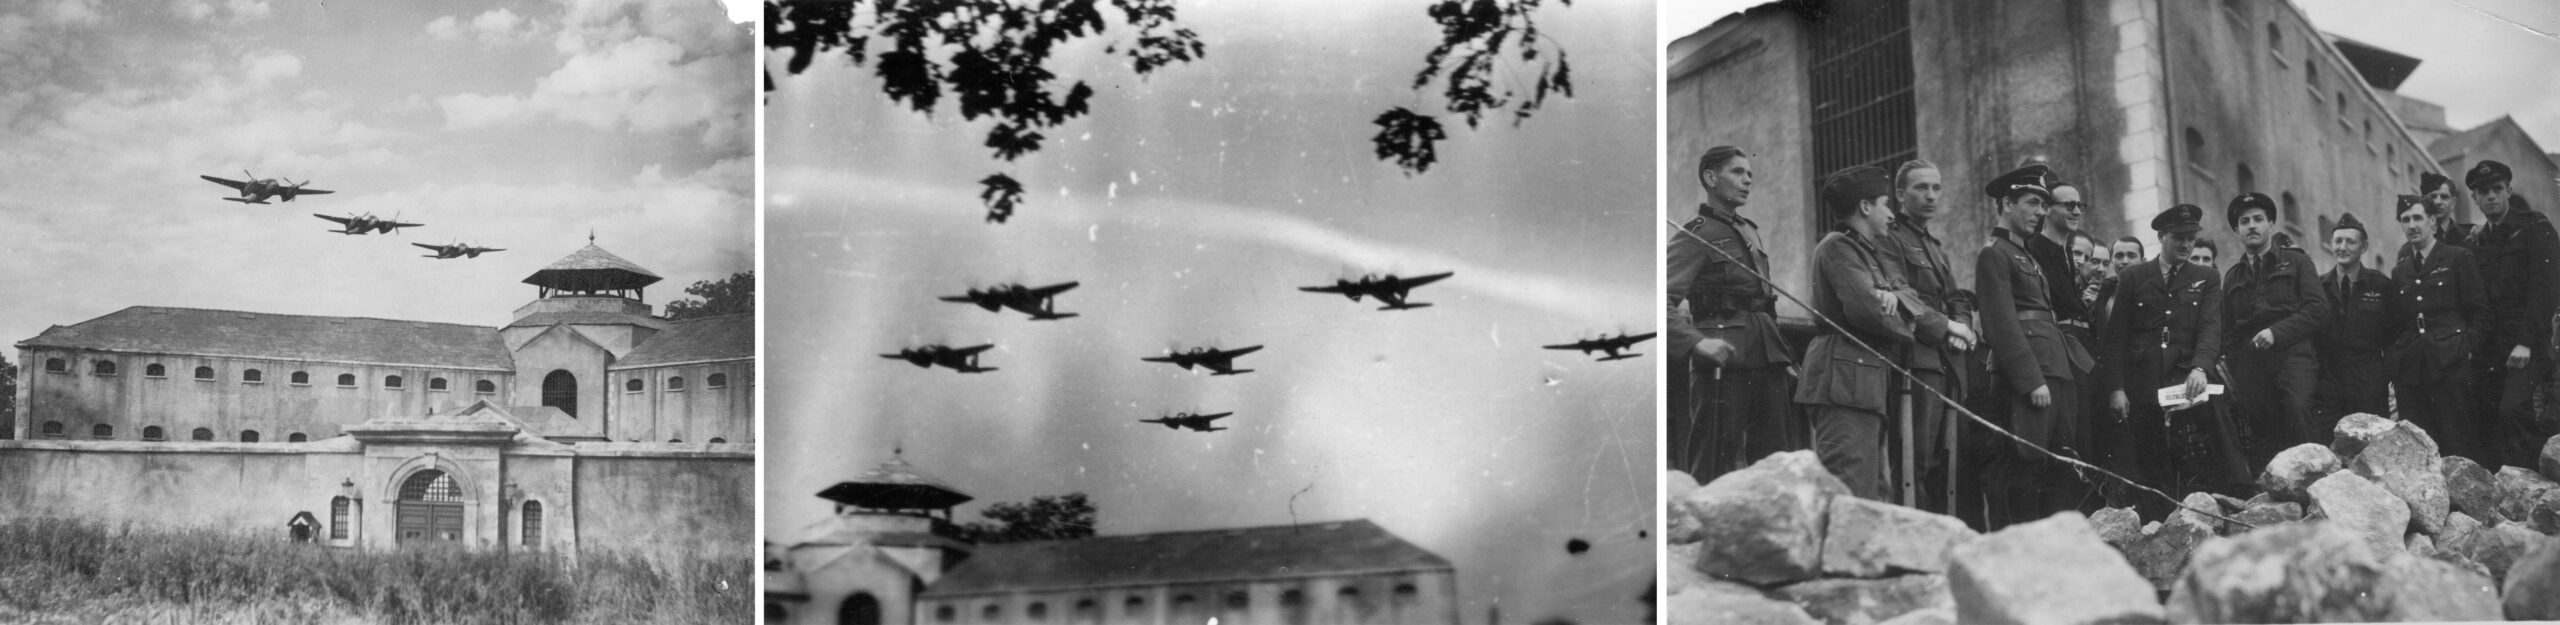 Training for attack on a lookalike of the Amiens prison and assessing the results of the attack on the Amiens prison. Luftwaffe and RAF personnel indicate this is after the liberation of France.